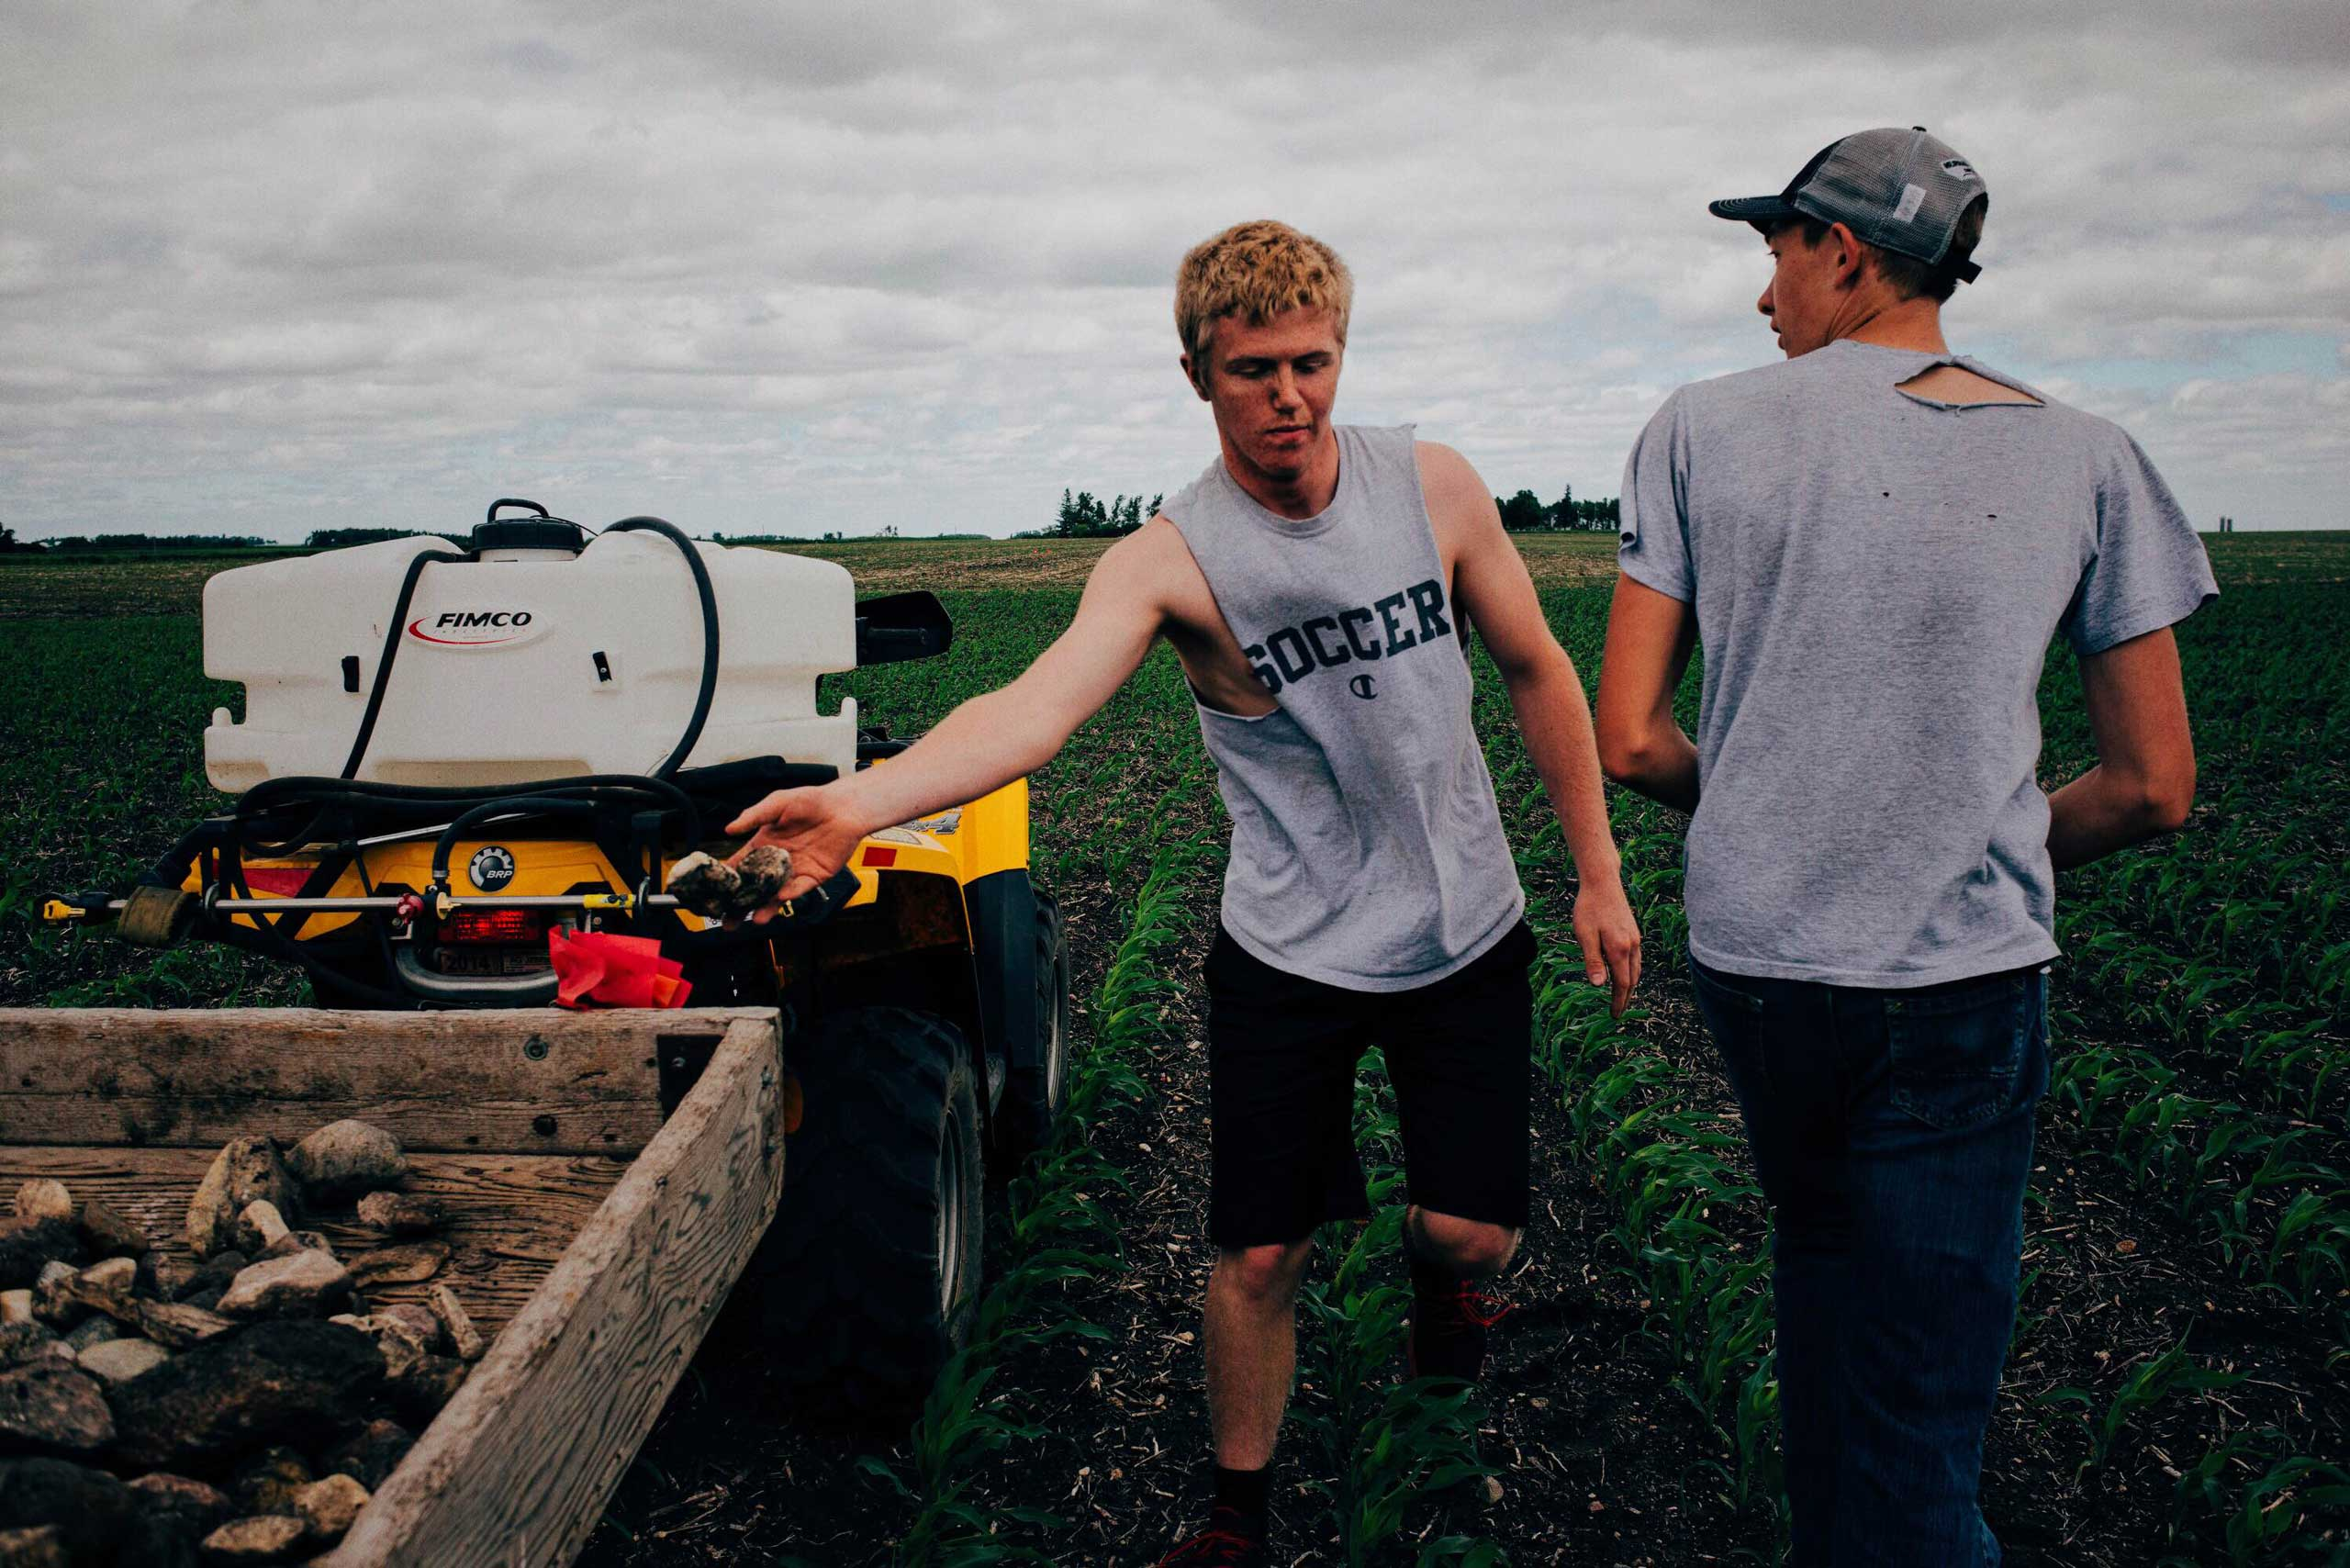 Levi Spittle and Isaiah Olsem throw rocks onto a trailer behind the ATV they use to pick rock in Springfield Township, Minnesota on June 1, 2016.